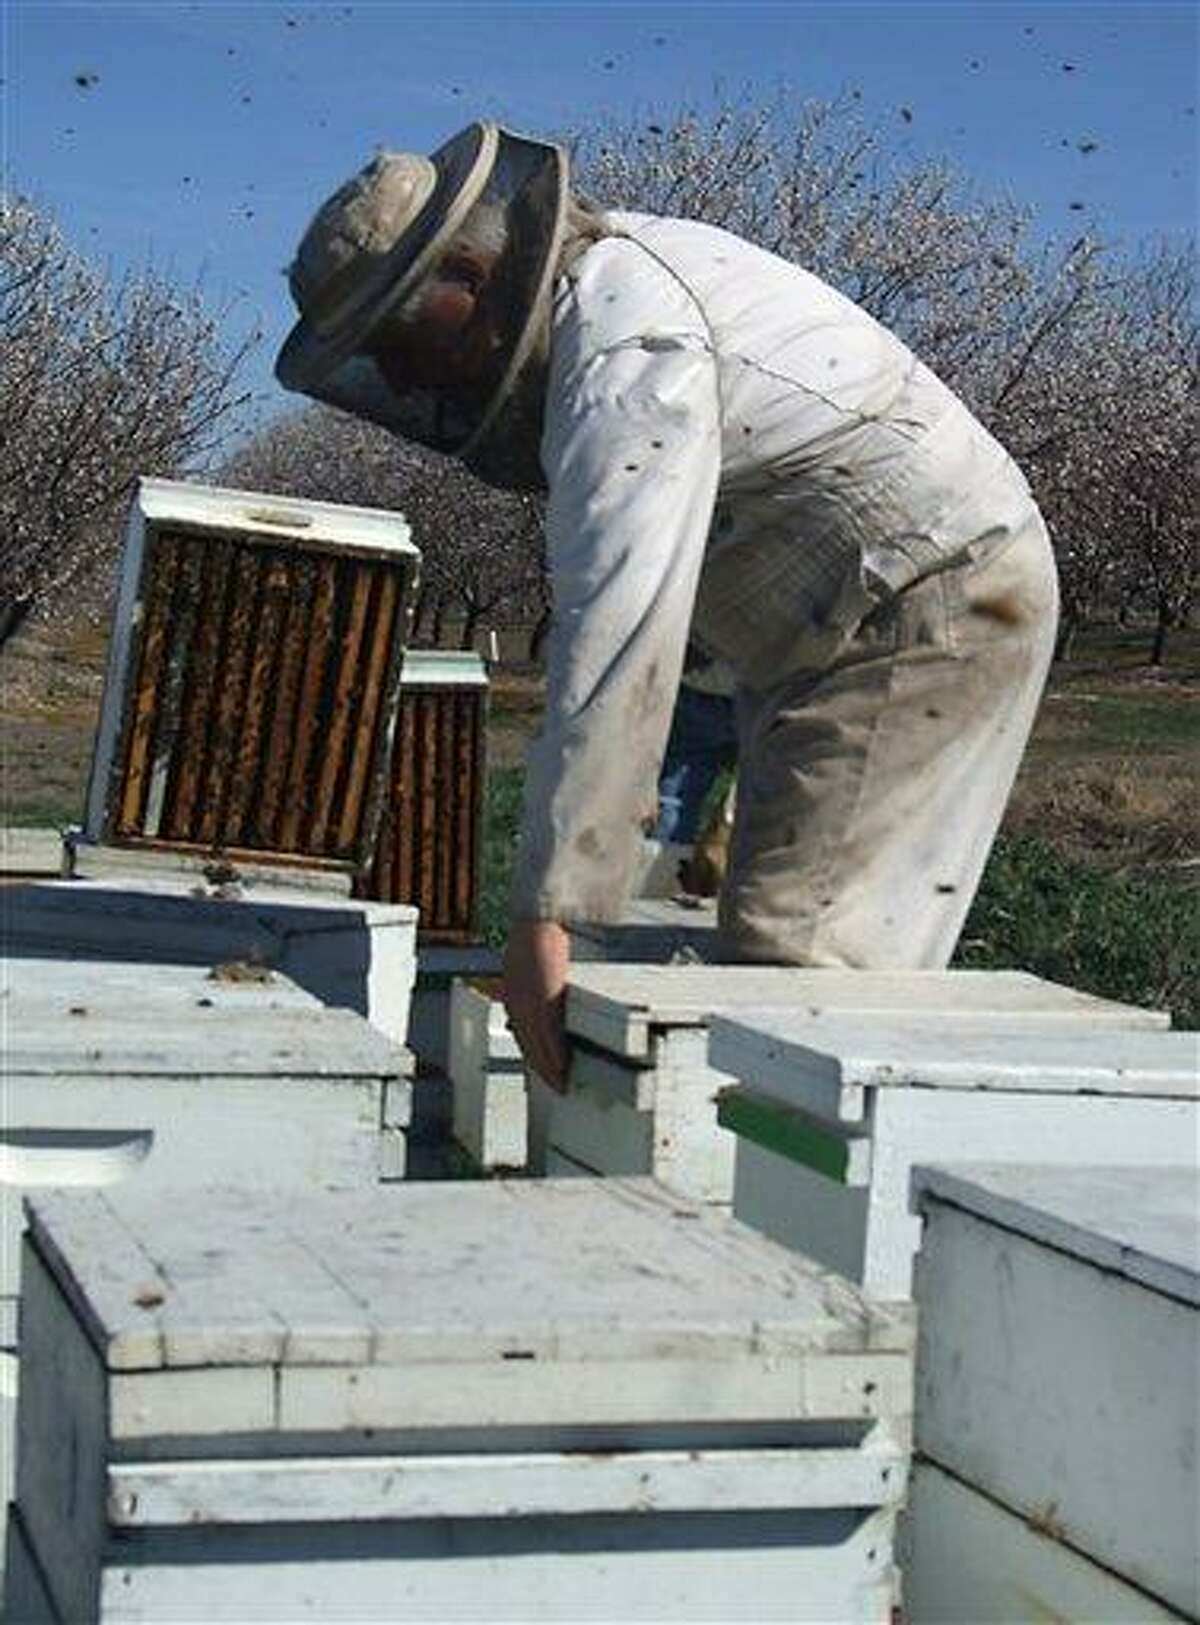 Beekeeper Orin Johnson checks on colonies pollinating an almond orchard Feb. 23 northwest of Waterford, Calif. A mild and dry winter that gave insects a reprieve from certain death now threatens to make spring a tough season for many U.S. farmers. Associated Press